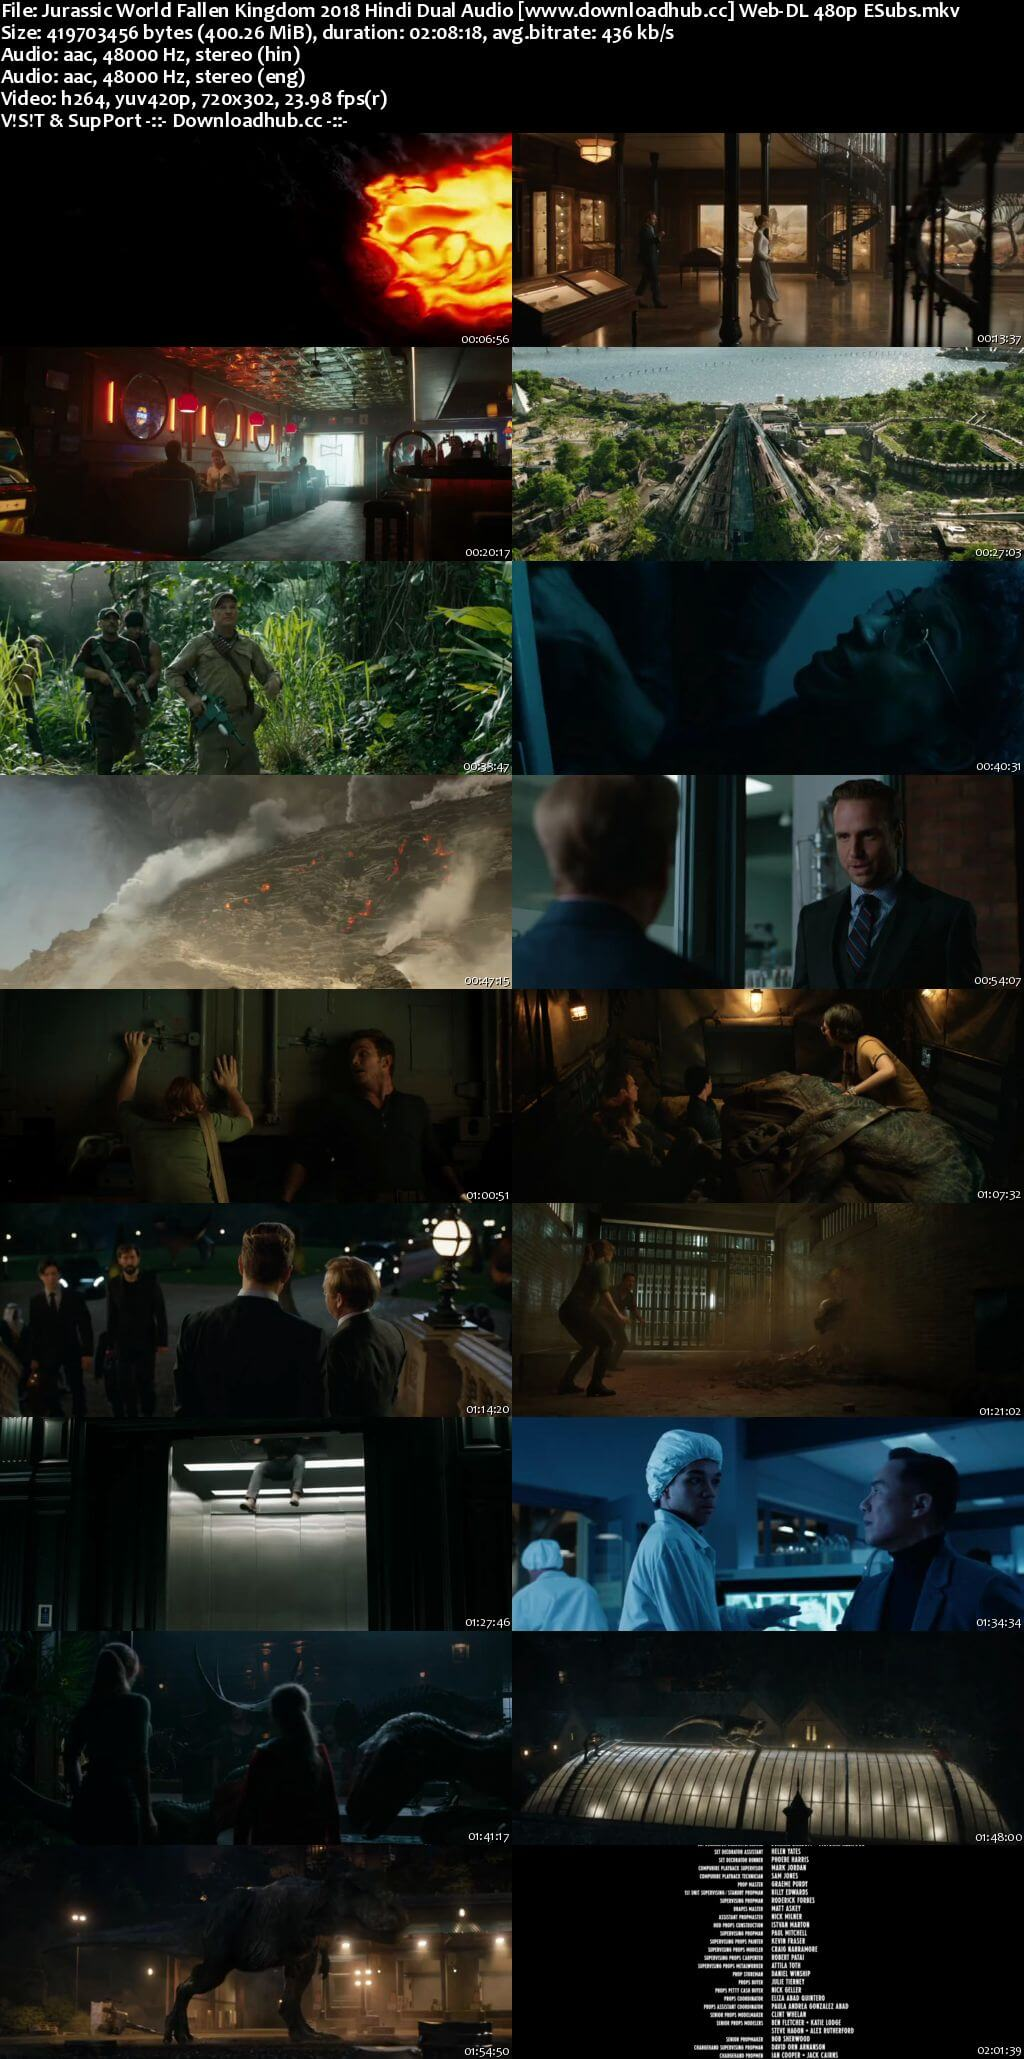 Jurassic World Fallen Kingdom 2018 Hindi Dual Audio 400MB Web-DL 480p ESubs